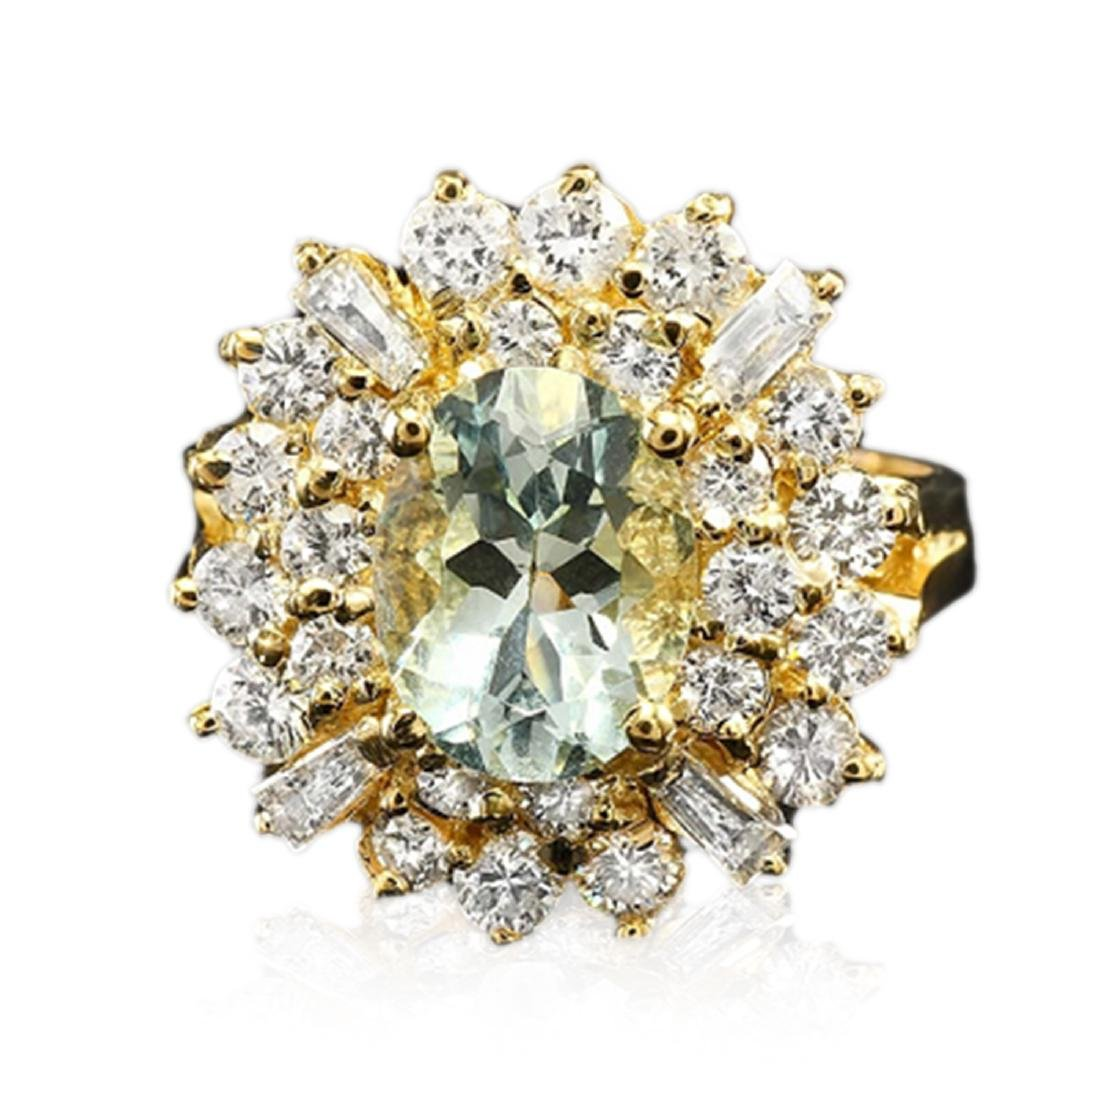 3.25 Carat Natural Aquamarine 14K Solid Yellow Gold